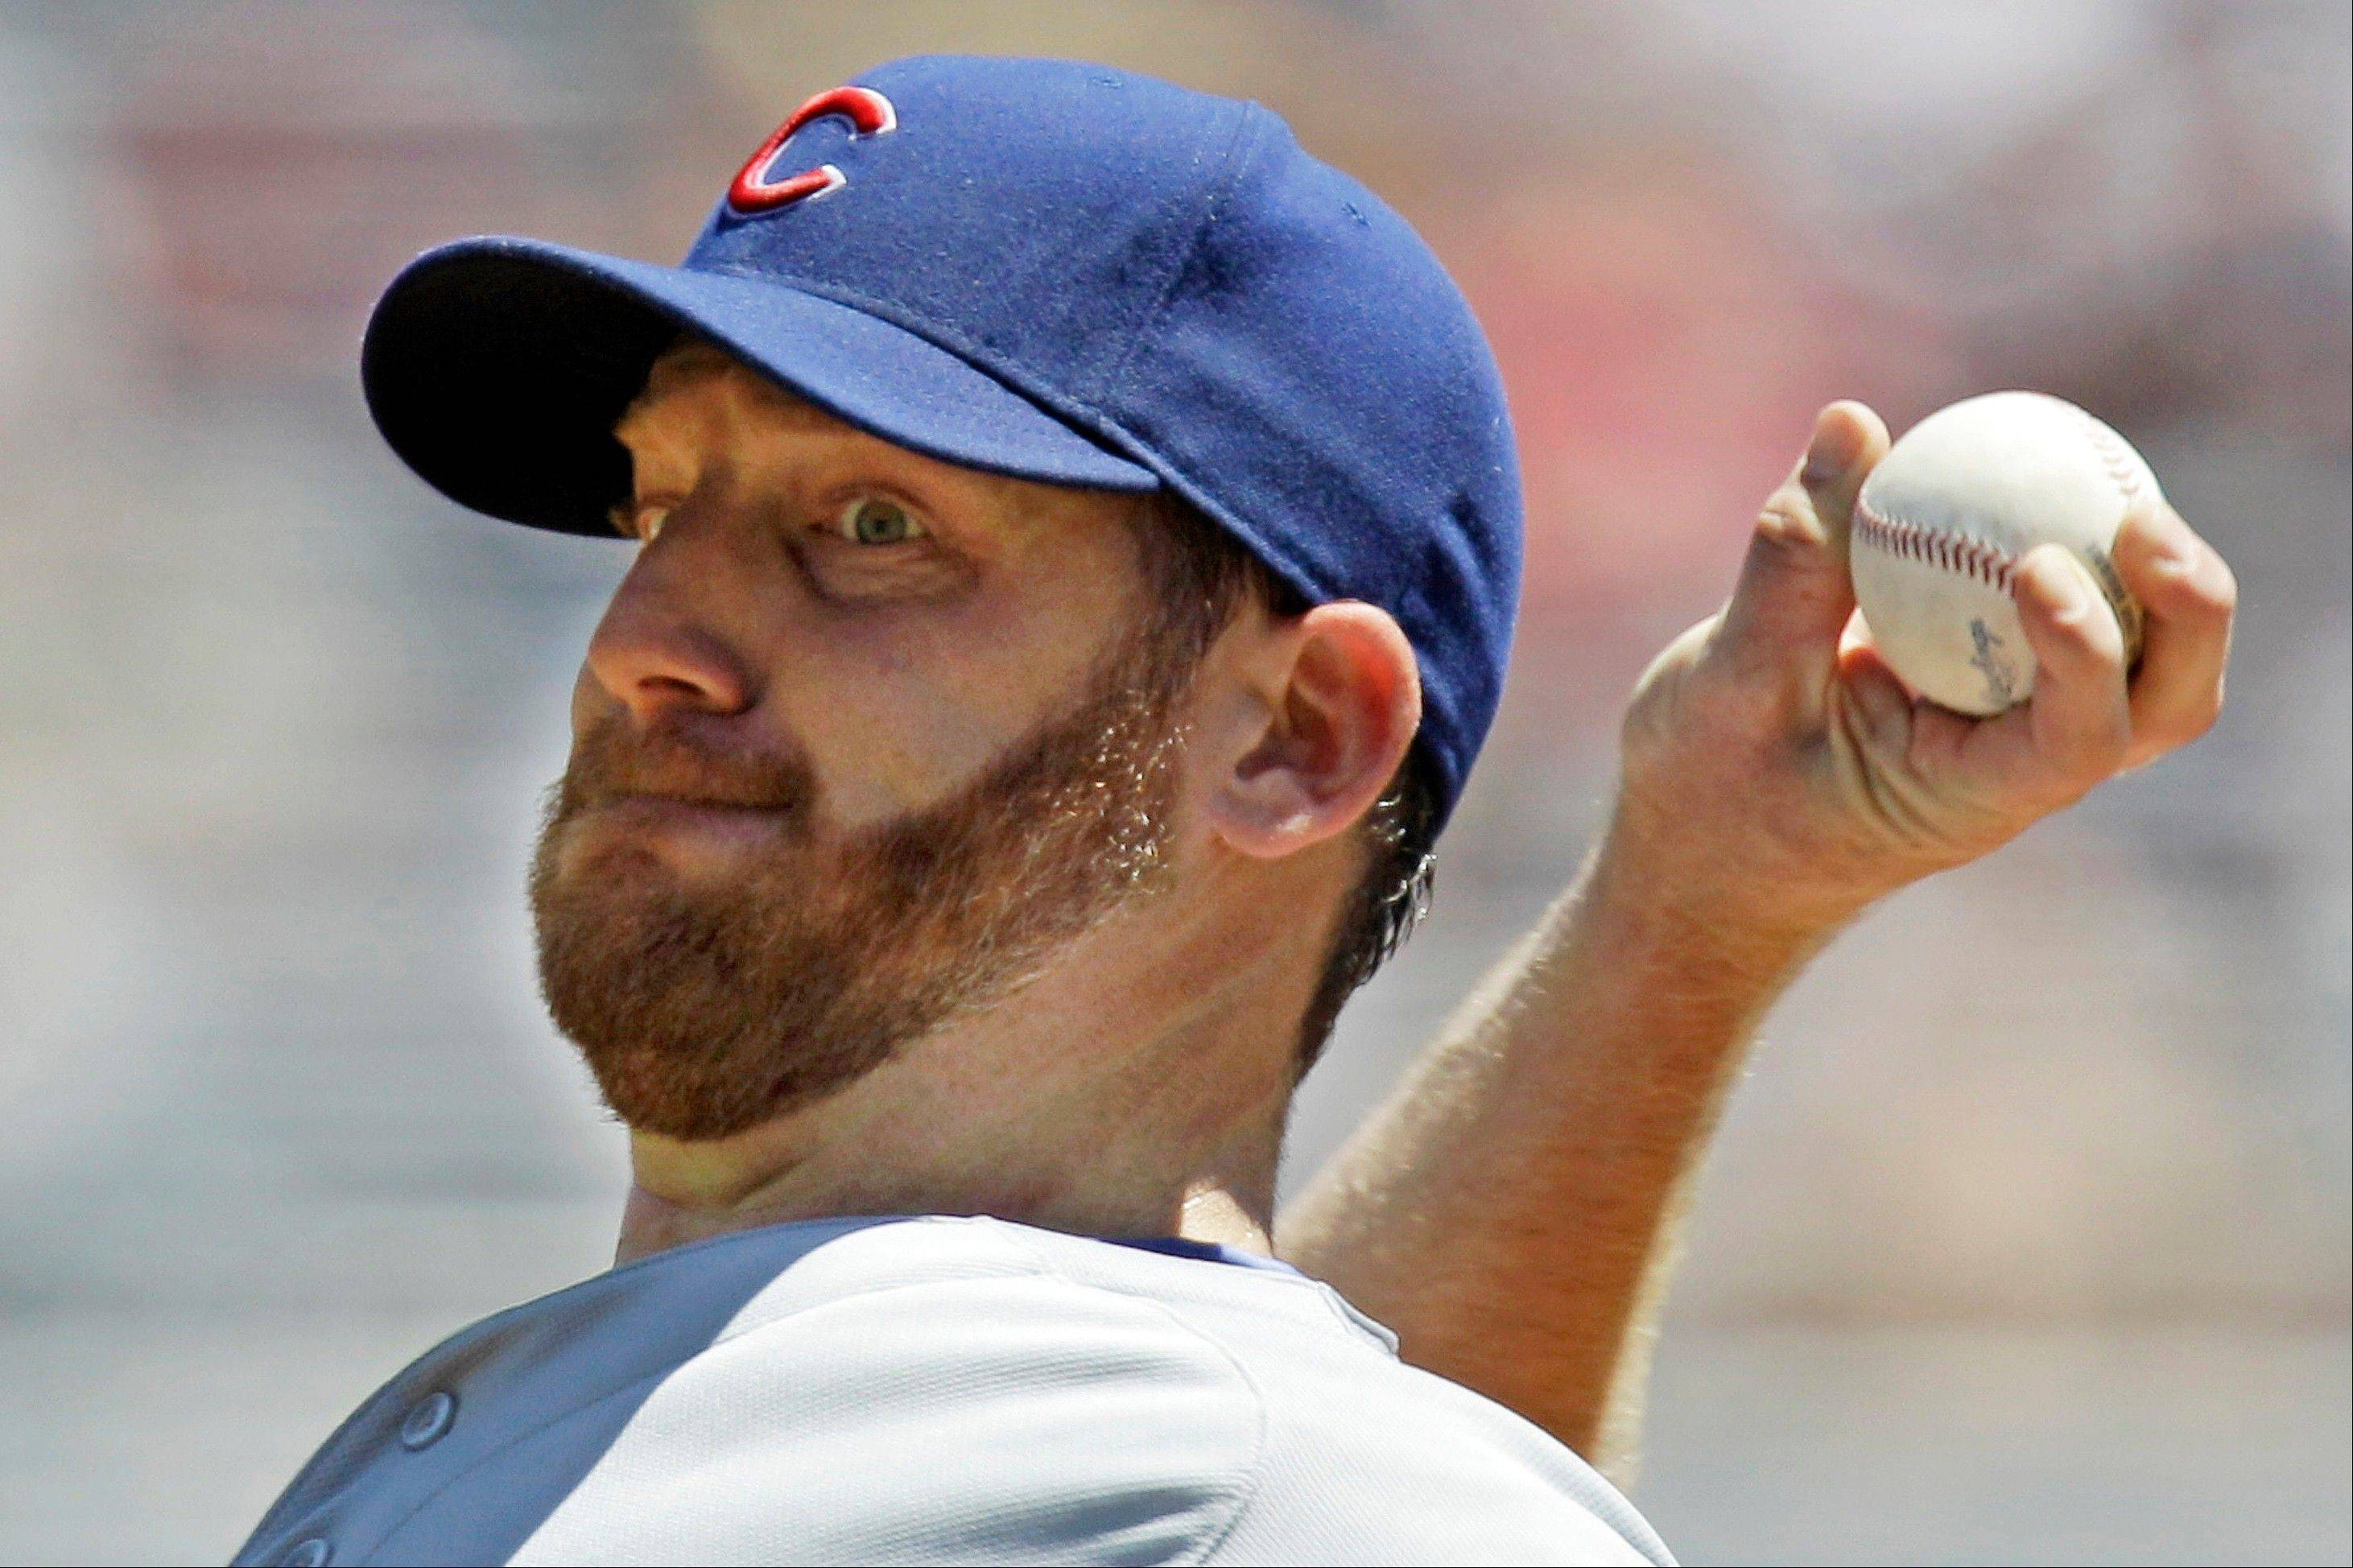 Ryan Dempster's refusal to accept a trade has left the Cubs in a tough spot.